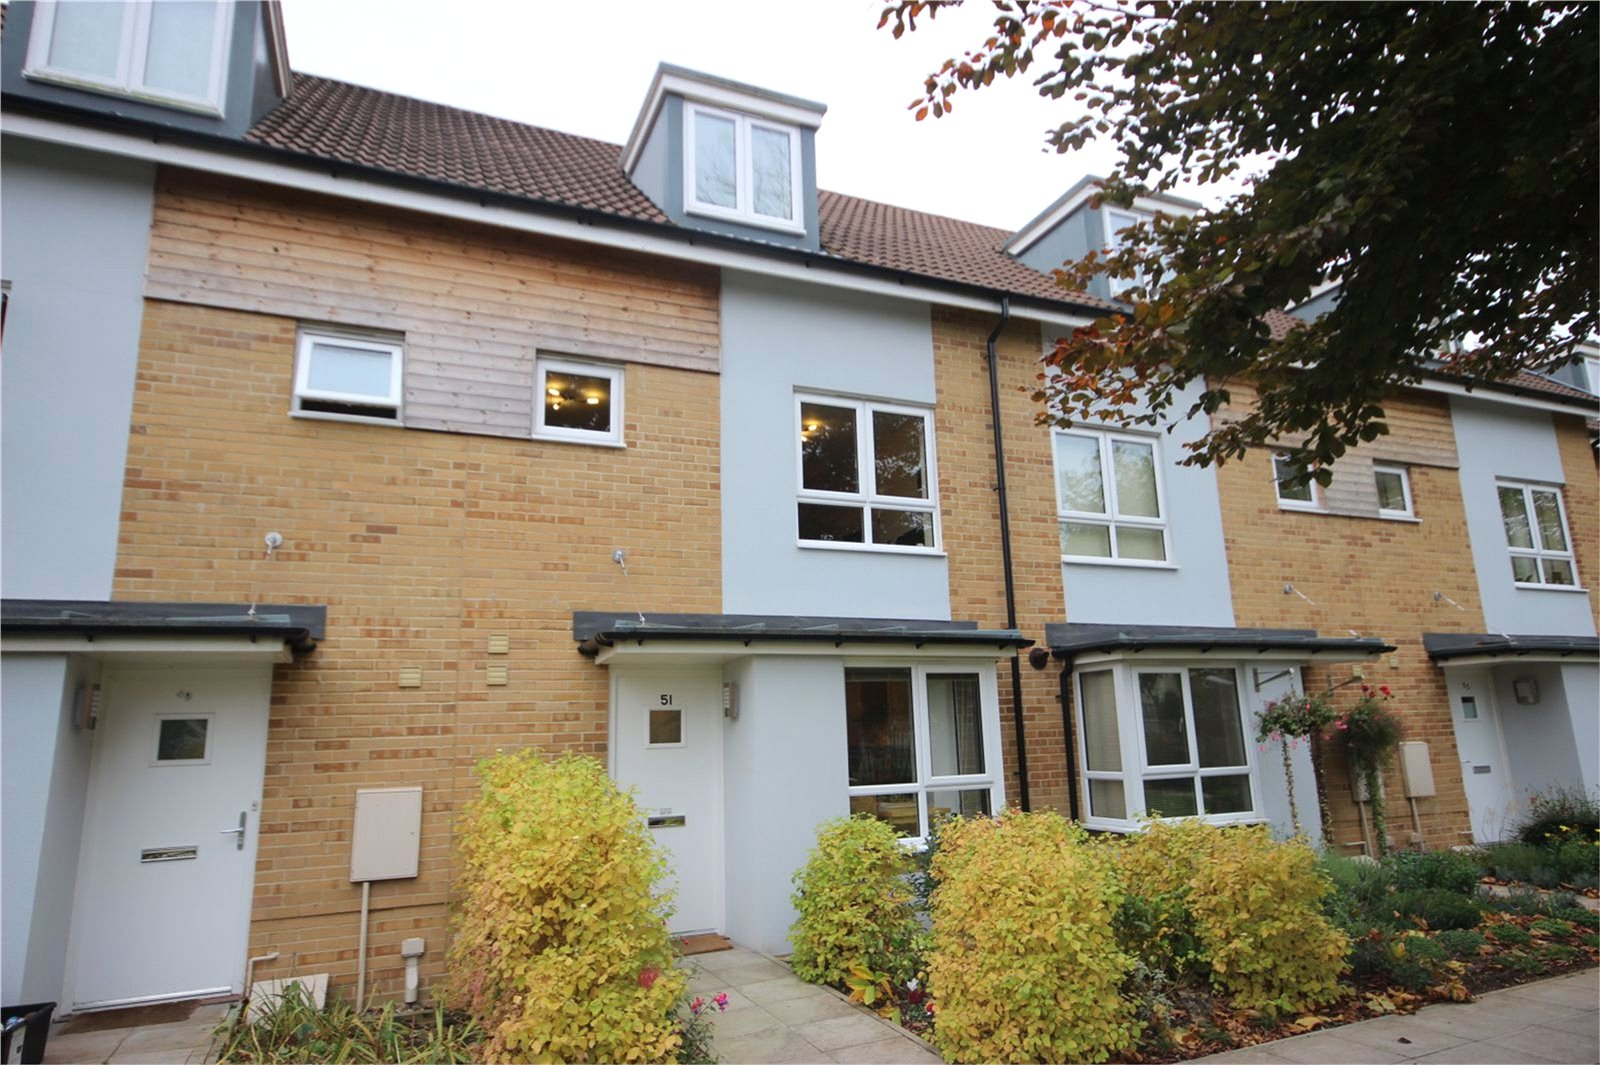 4 Bedrooms Terraced House for sale in Marissal Road Henbury Bristol BS10